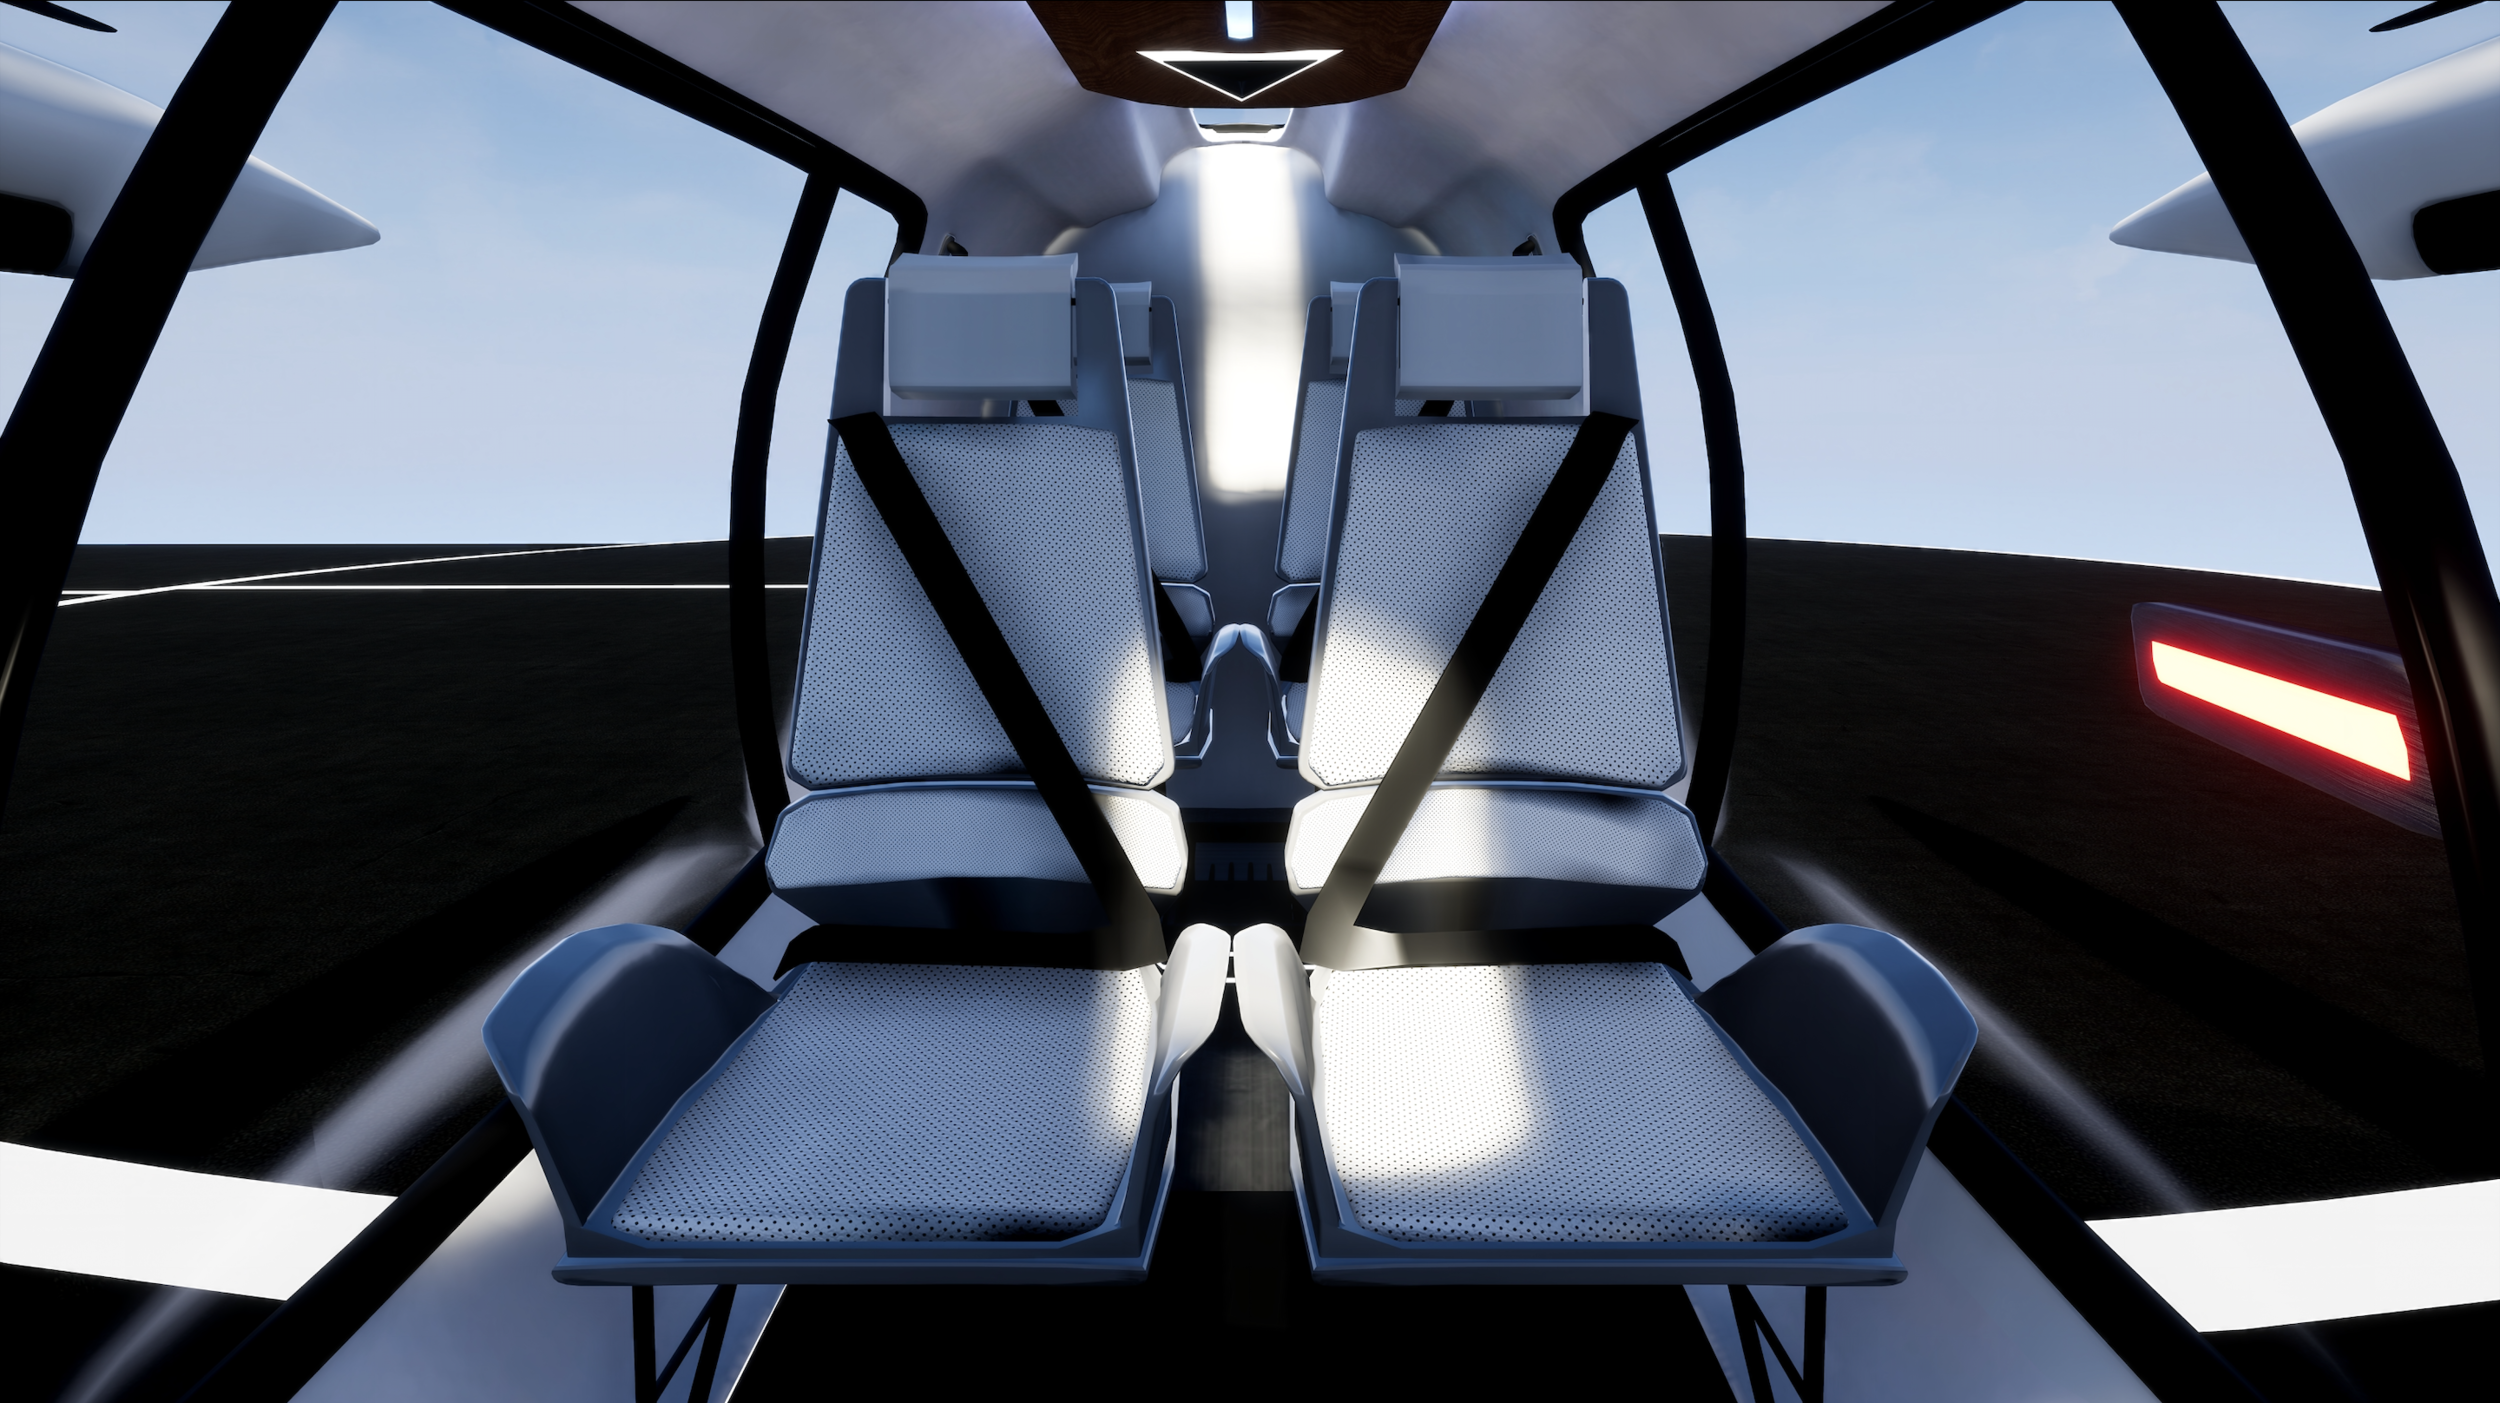 Elevate_Interior_2.png